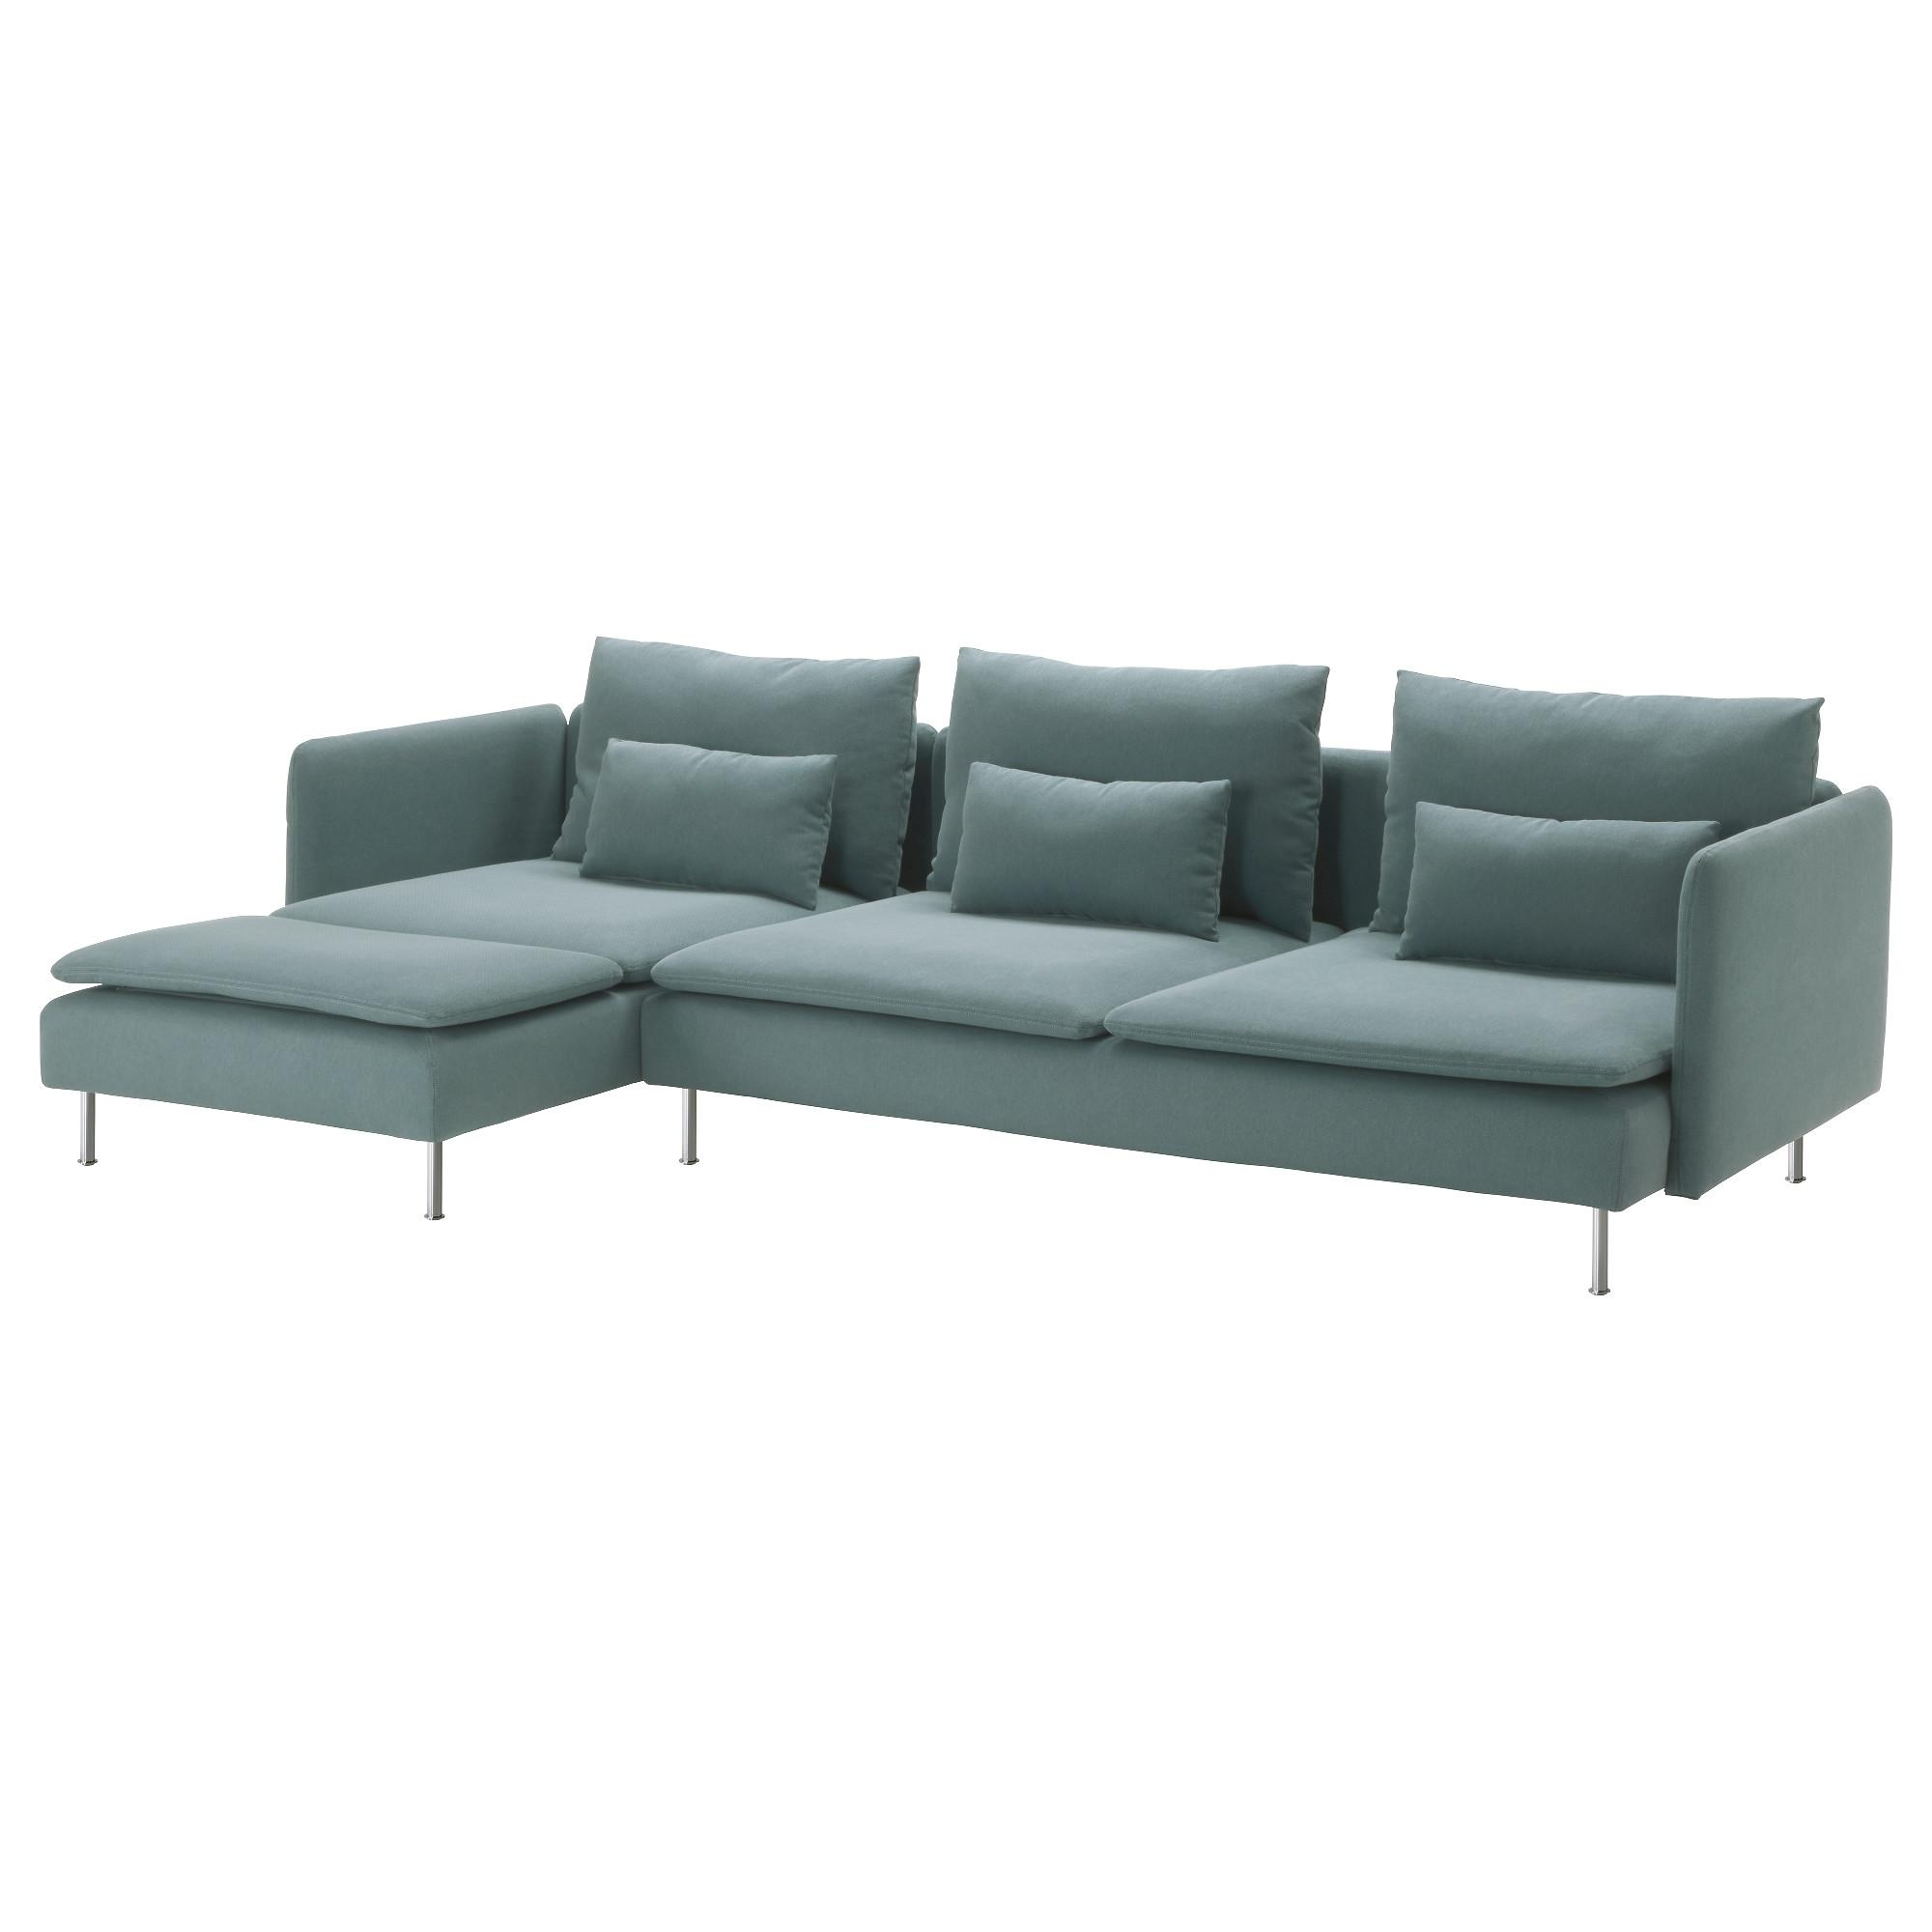 Modular Sofas & Sectionals – Ikea With Regard To Modular Sofas (Image 17 of 20)